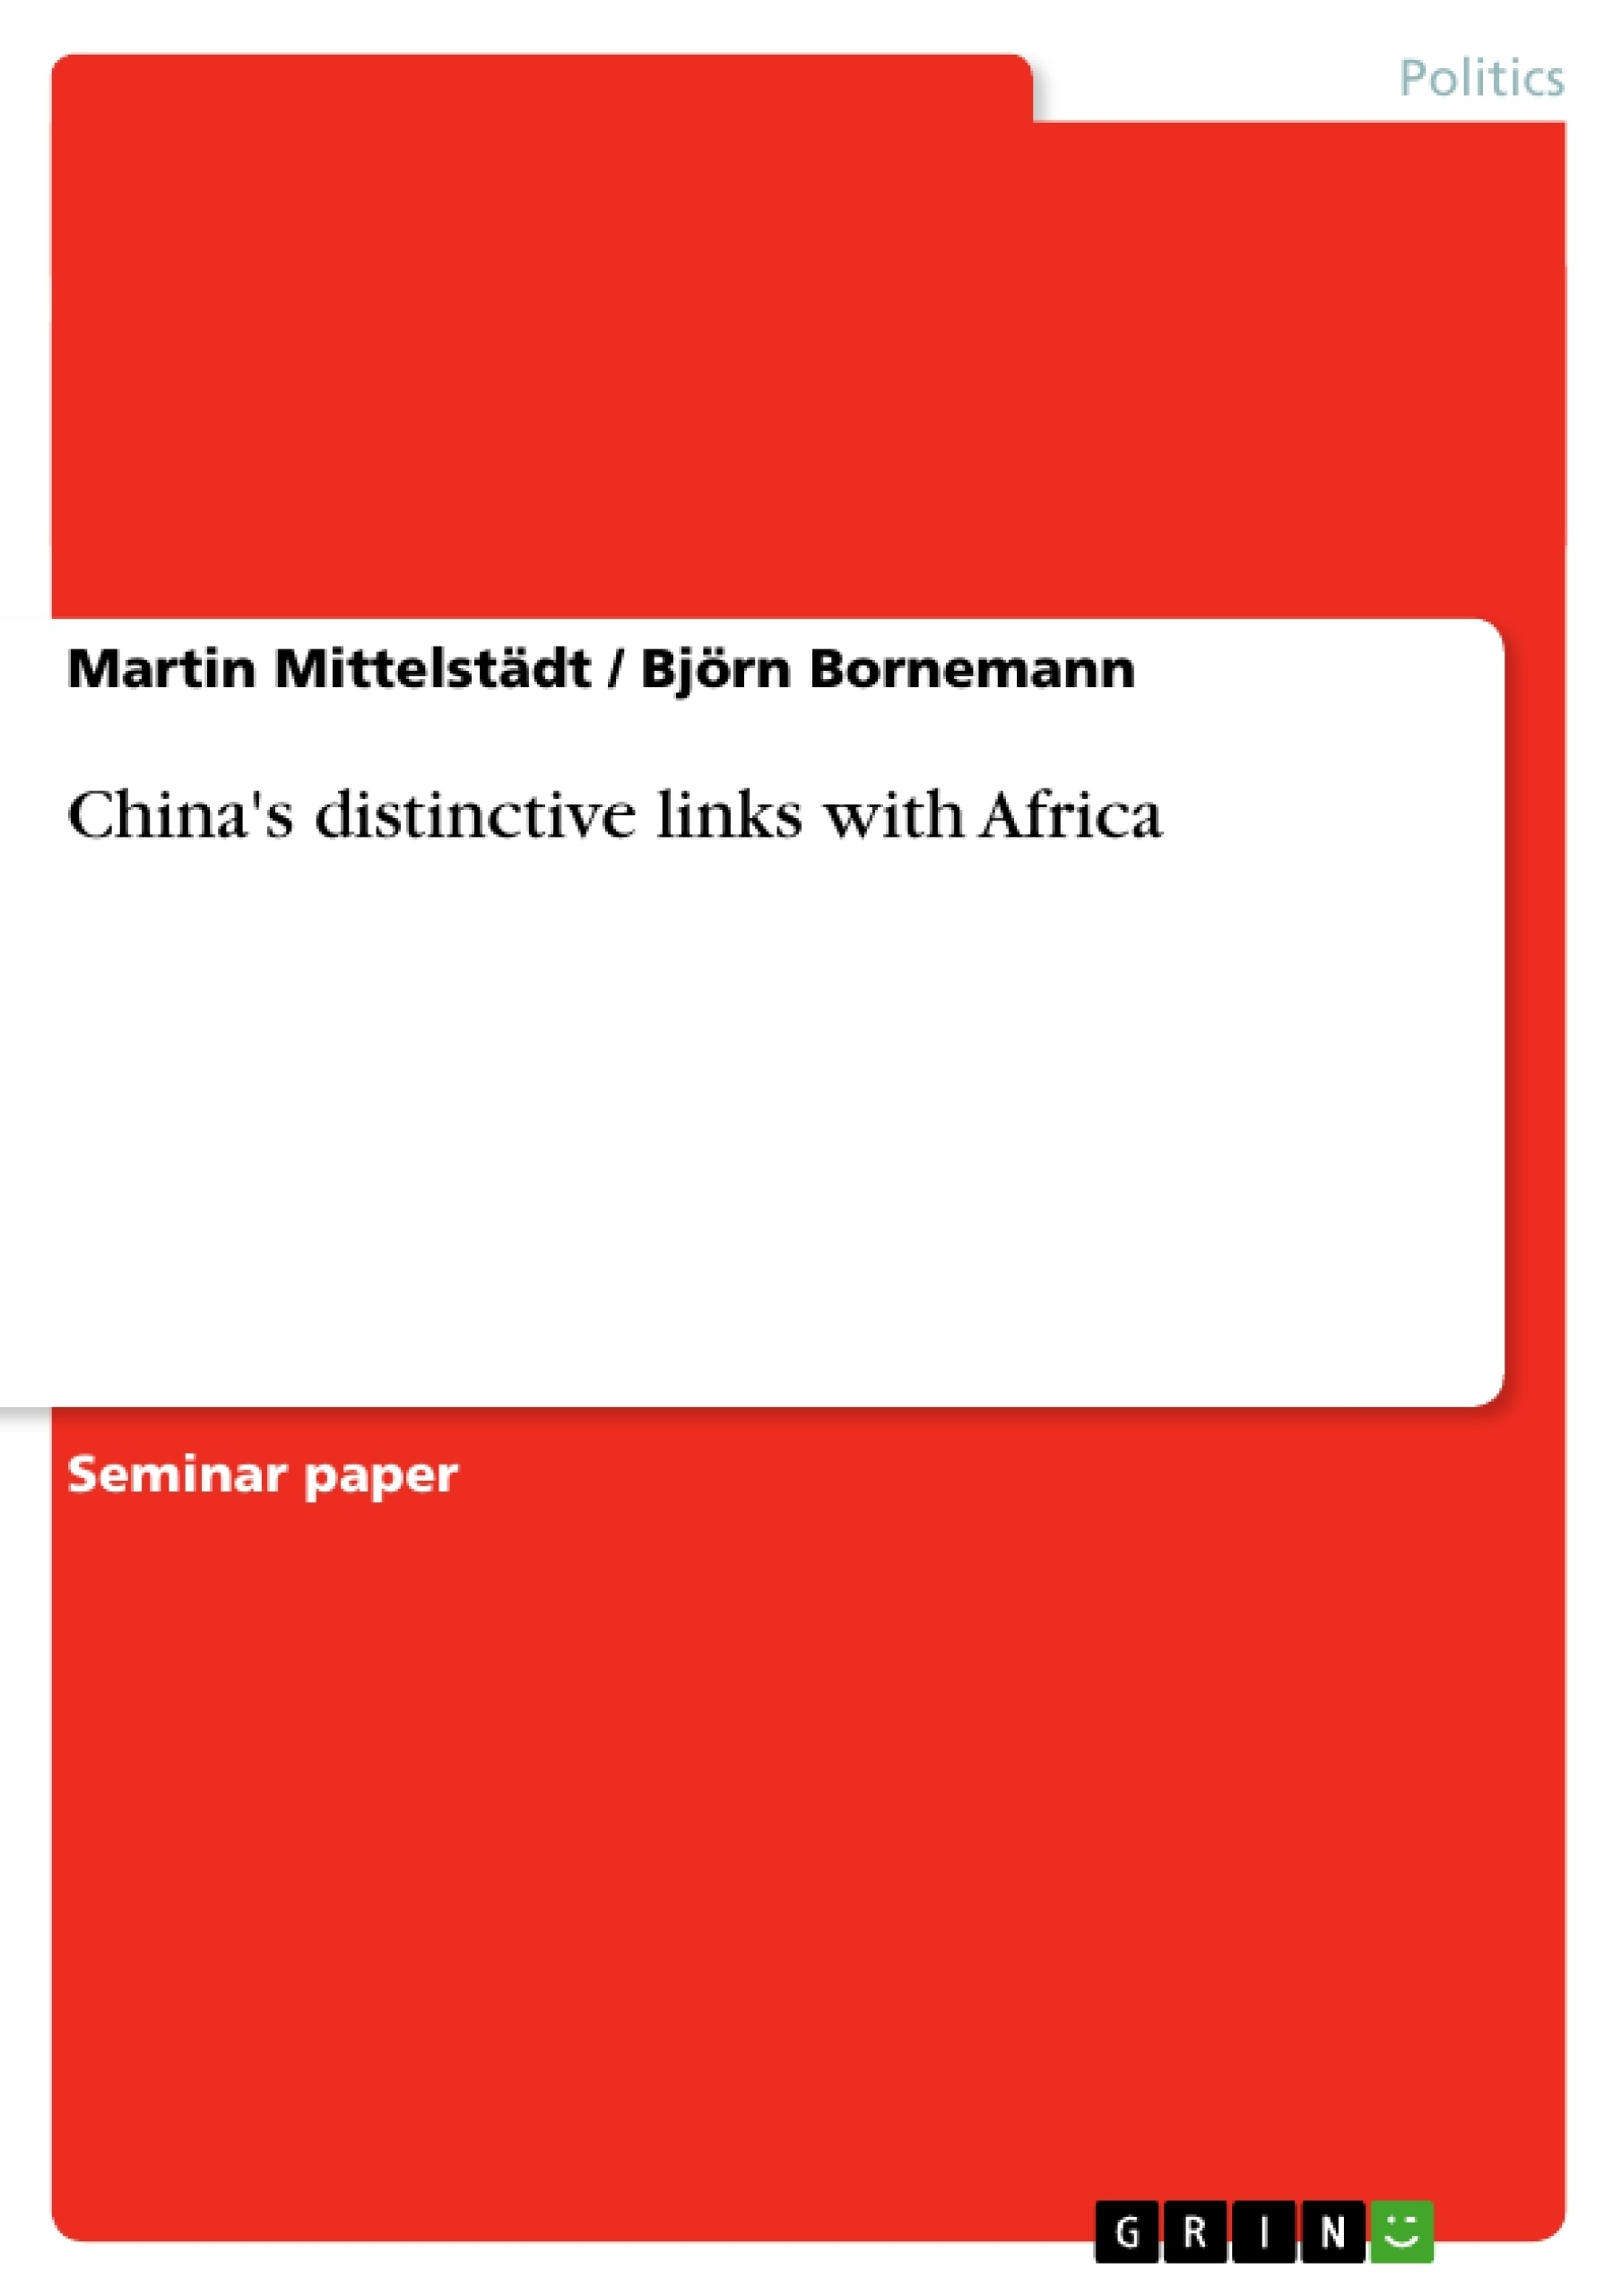 Title: China's distinctive links with Africa